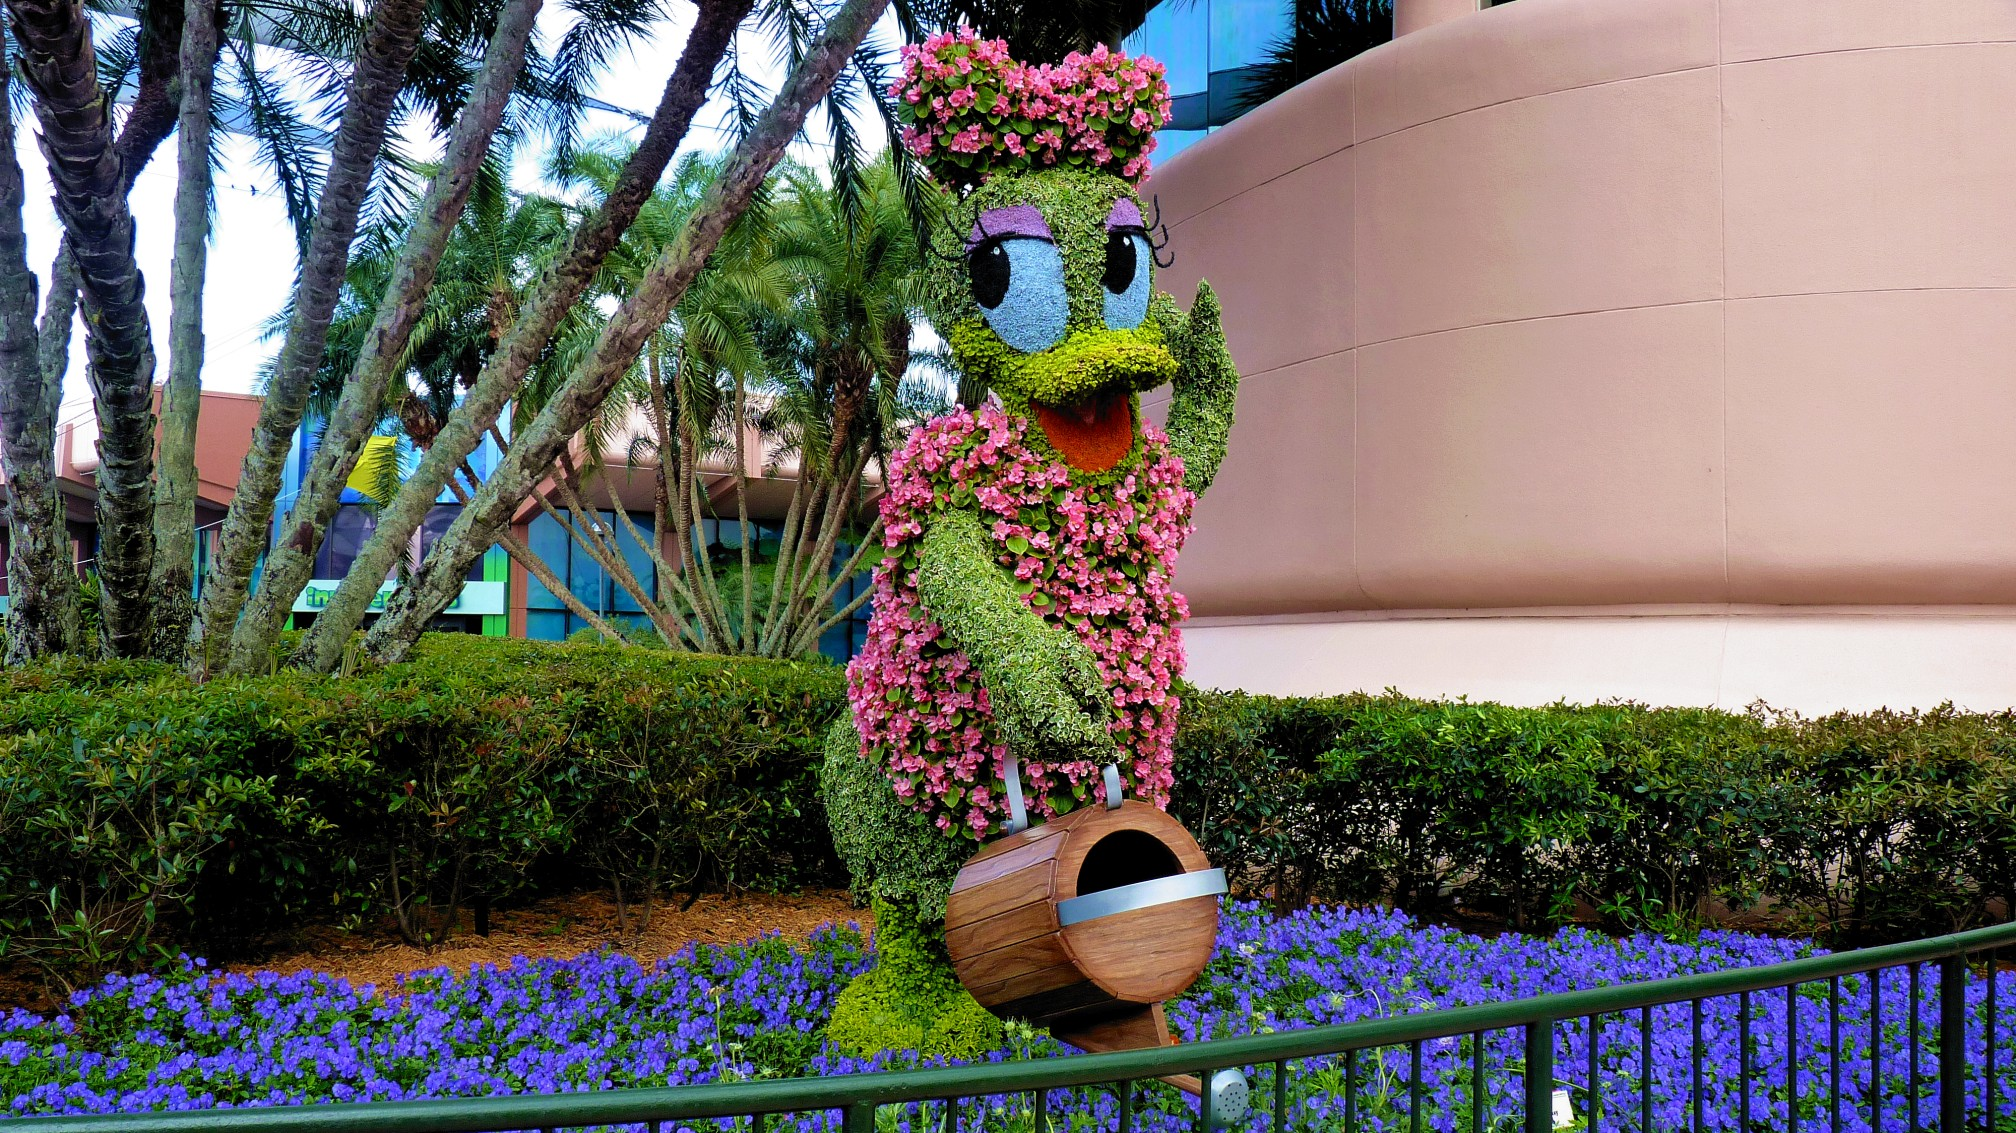 Jud's Disney Picture of the Day: DAISY